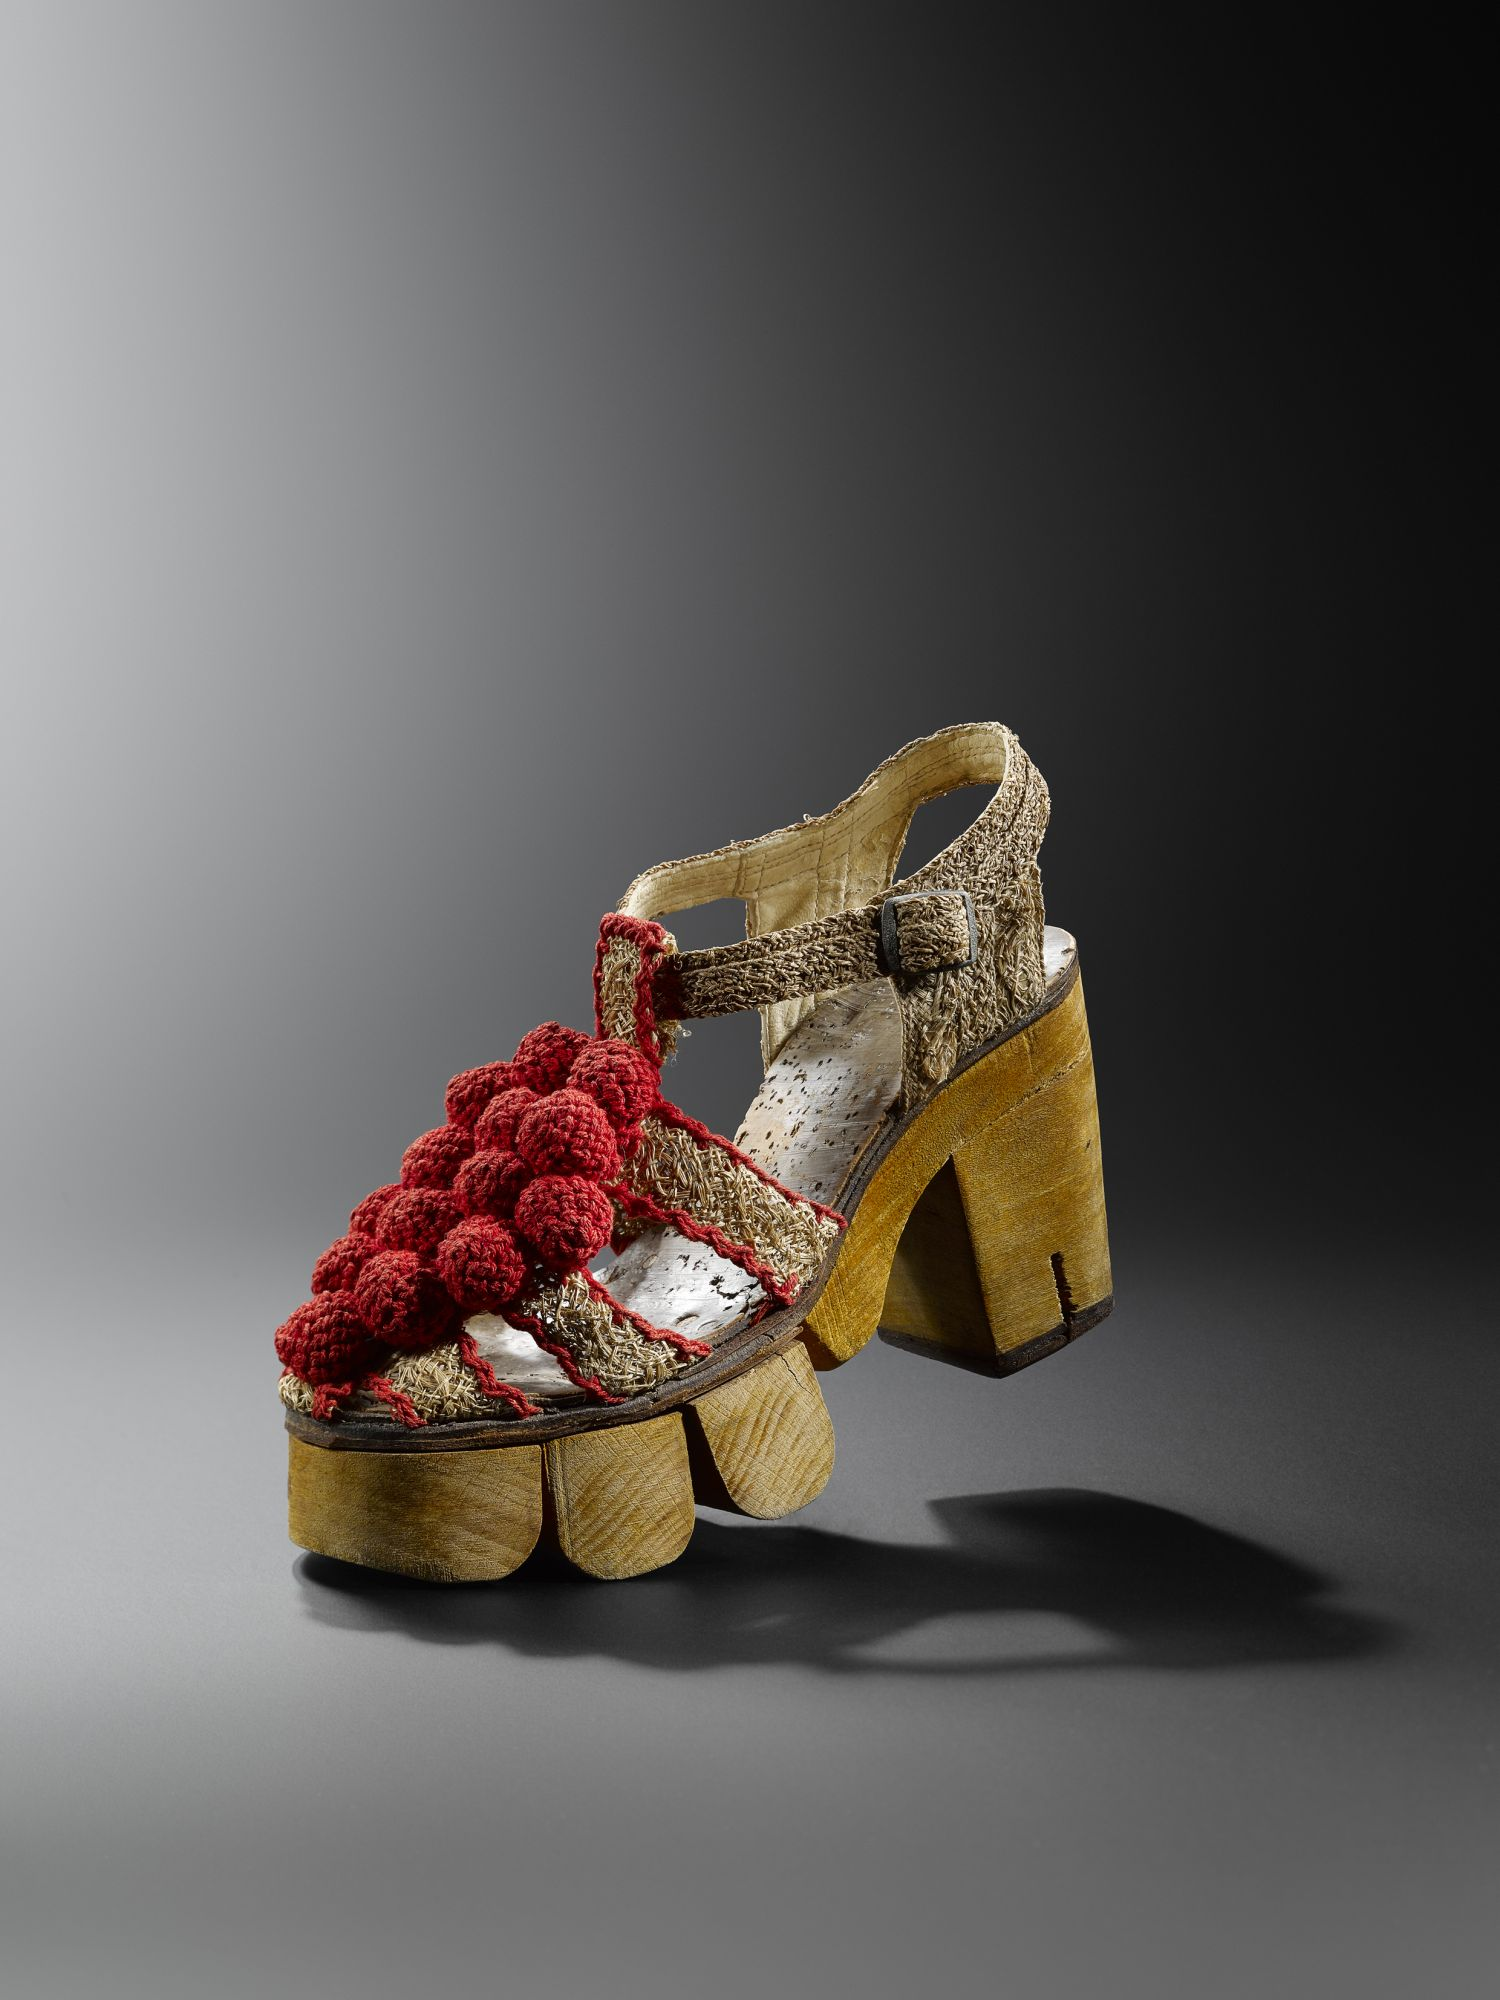 Shoes Take The Spotlight At Paris's Museum Of Decorative Arts